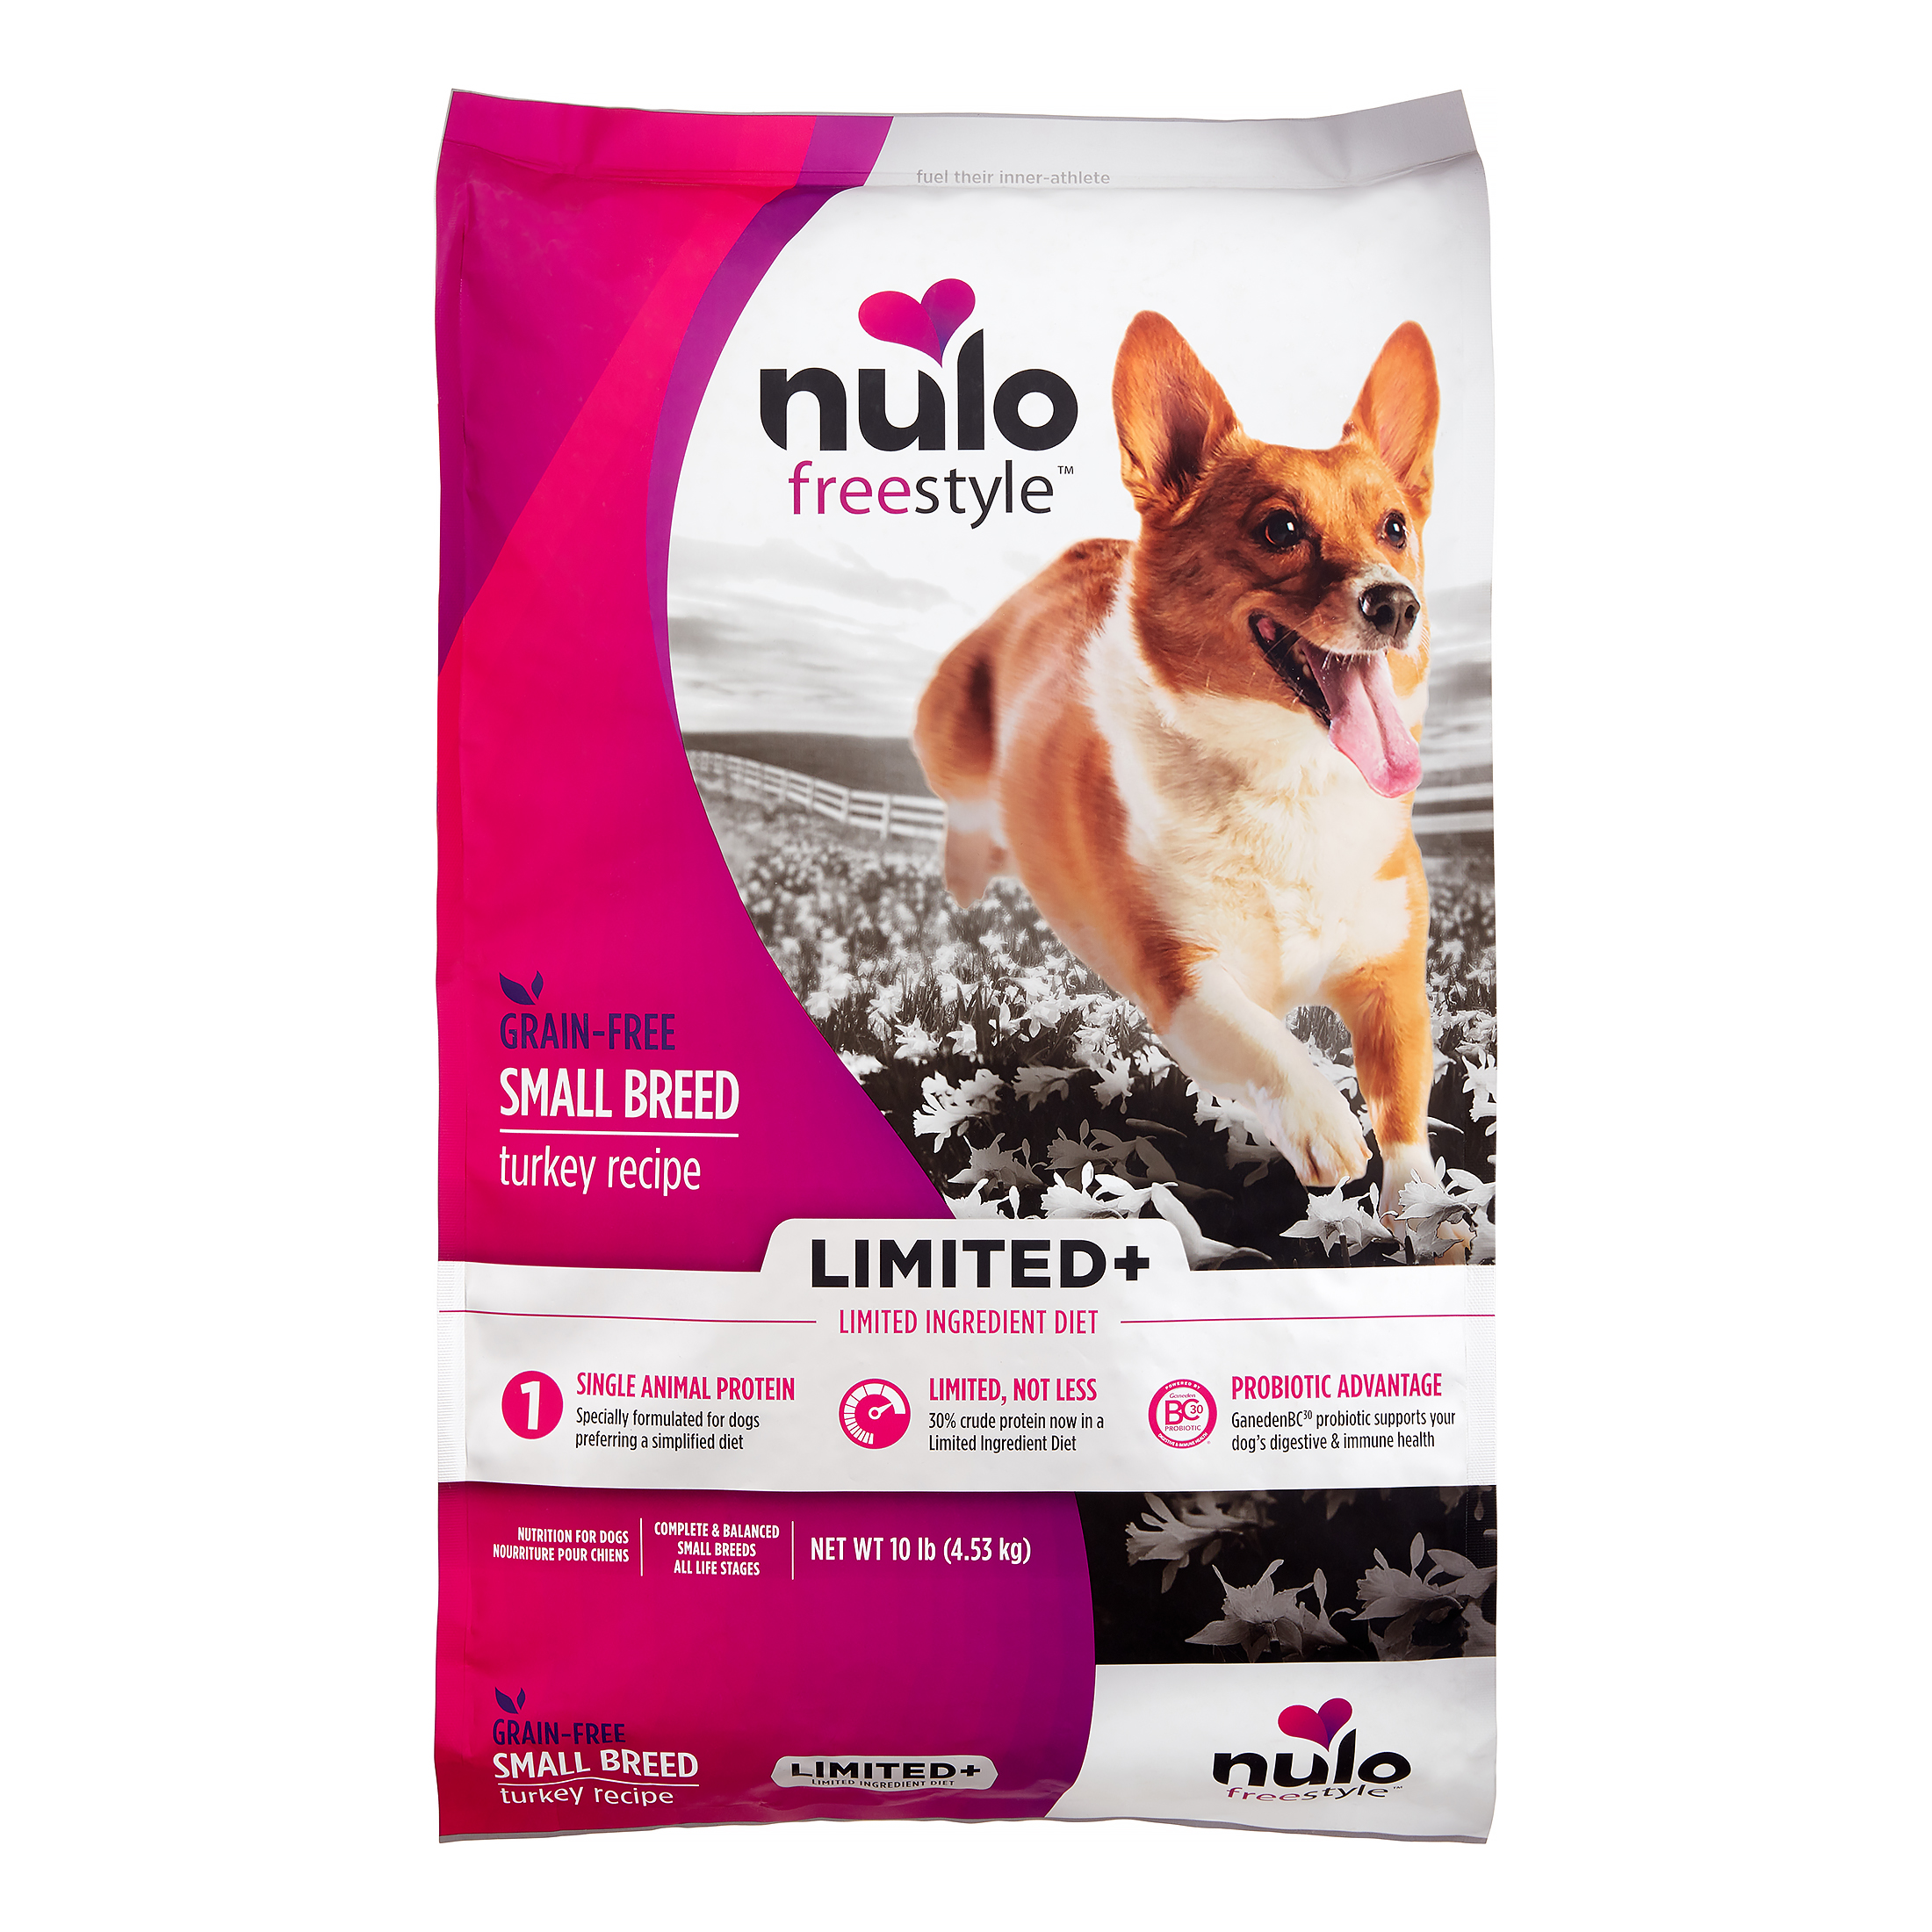 Nulo FreeStyle Grain-Free Limited Ingredient Diet Turkey Small Breed Dry Dog Food, 10 Lb